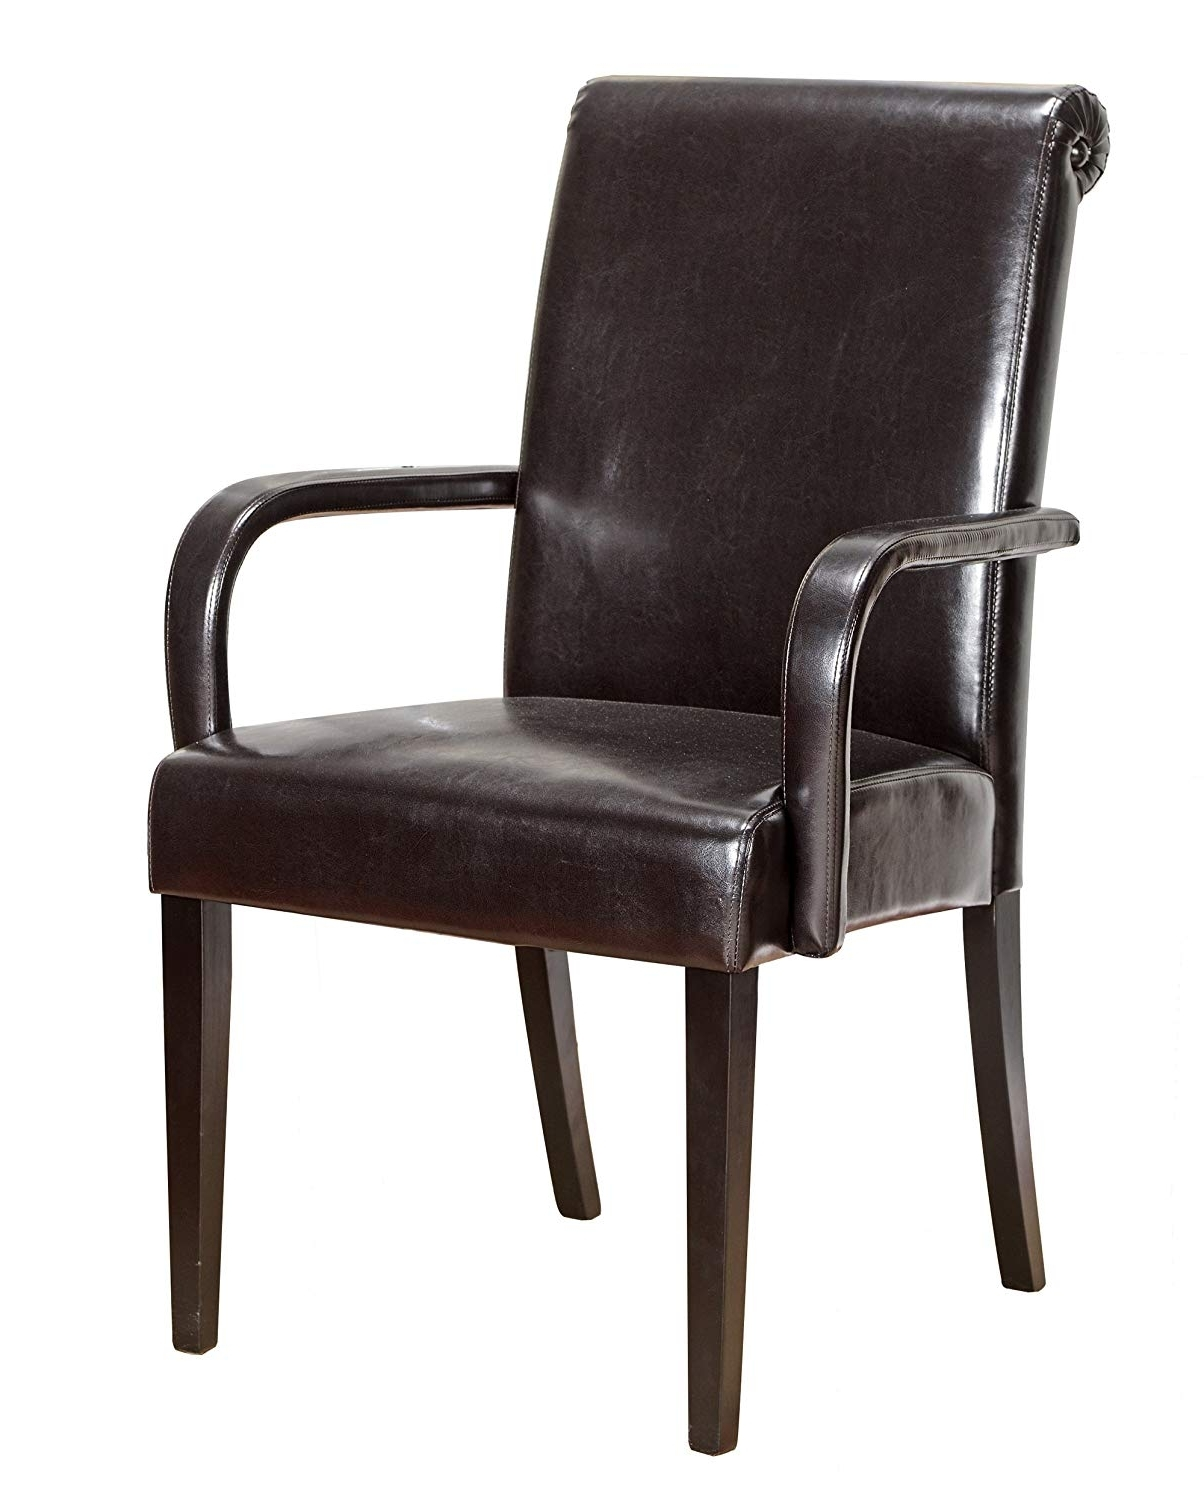 Most Recently Released Grady Side Chairs Throughout Amazon: King's Brand Set Of 2 Espresso Parson Chairs With Arms (View 16 of 20)